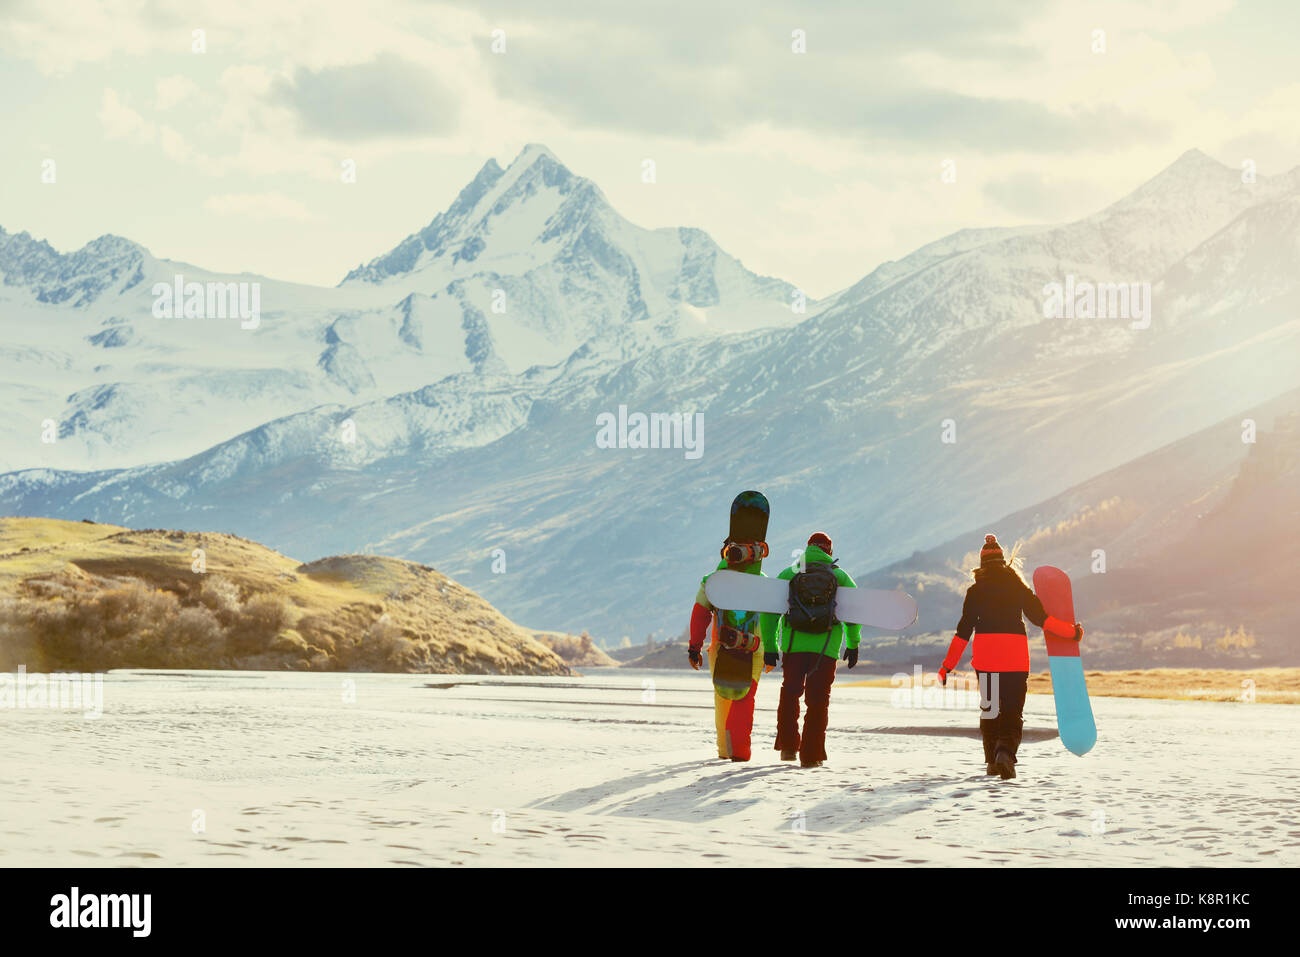 Amis snowboarder groupe ski concept Photo Stock